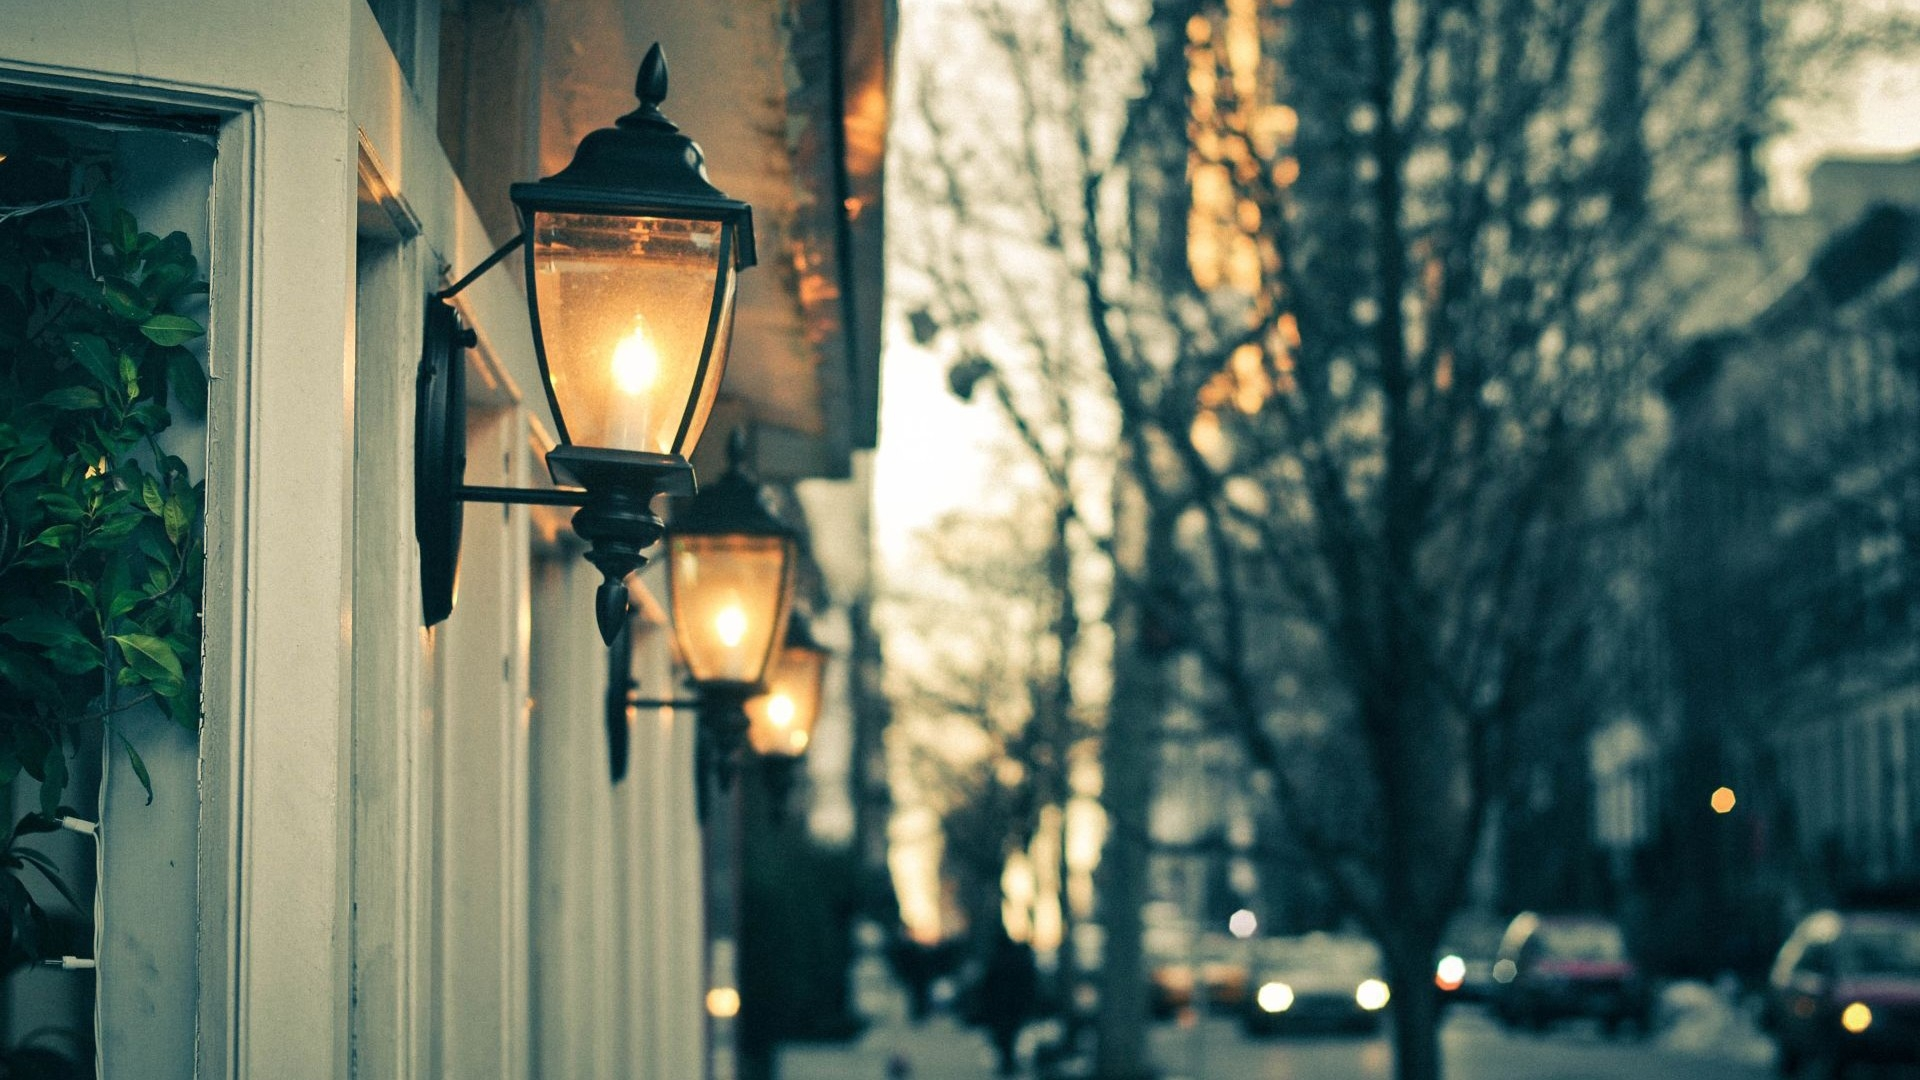 Street Lamp Wallpaper Download Wallpaper 1920x1080 Street Lights Night Trees